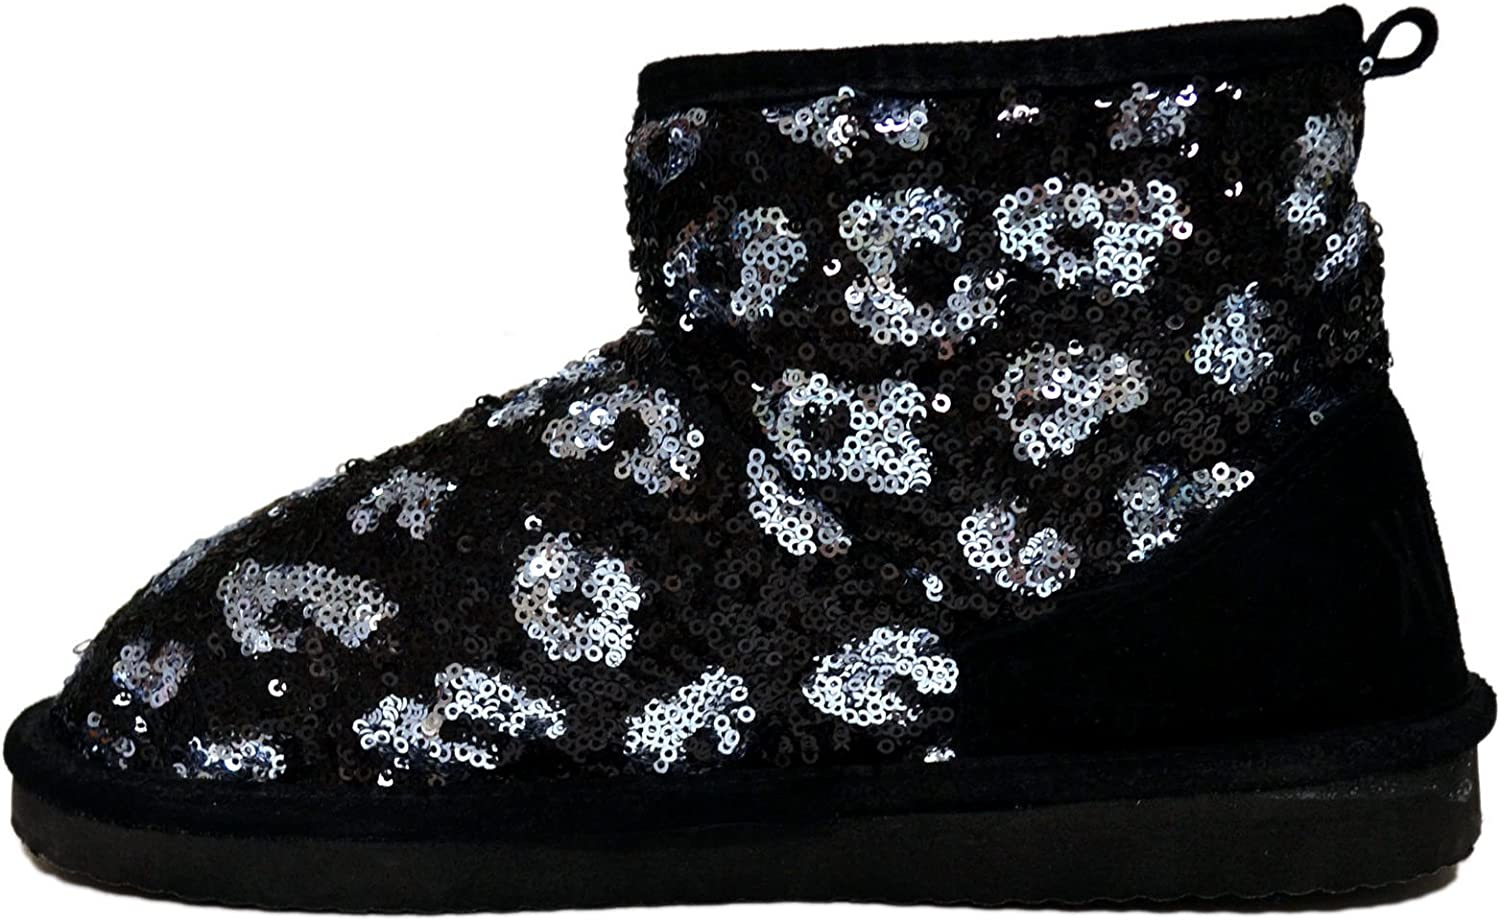 Victoria's Secret Pink Fur Lined Bootie Mukluks Boots Shoes with Bling